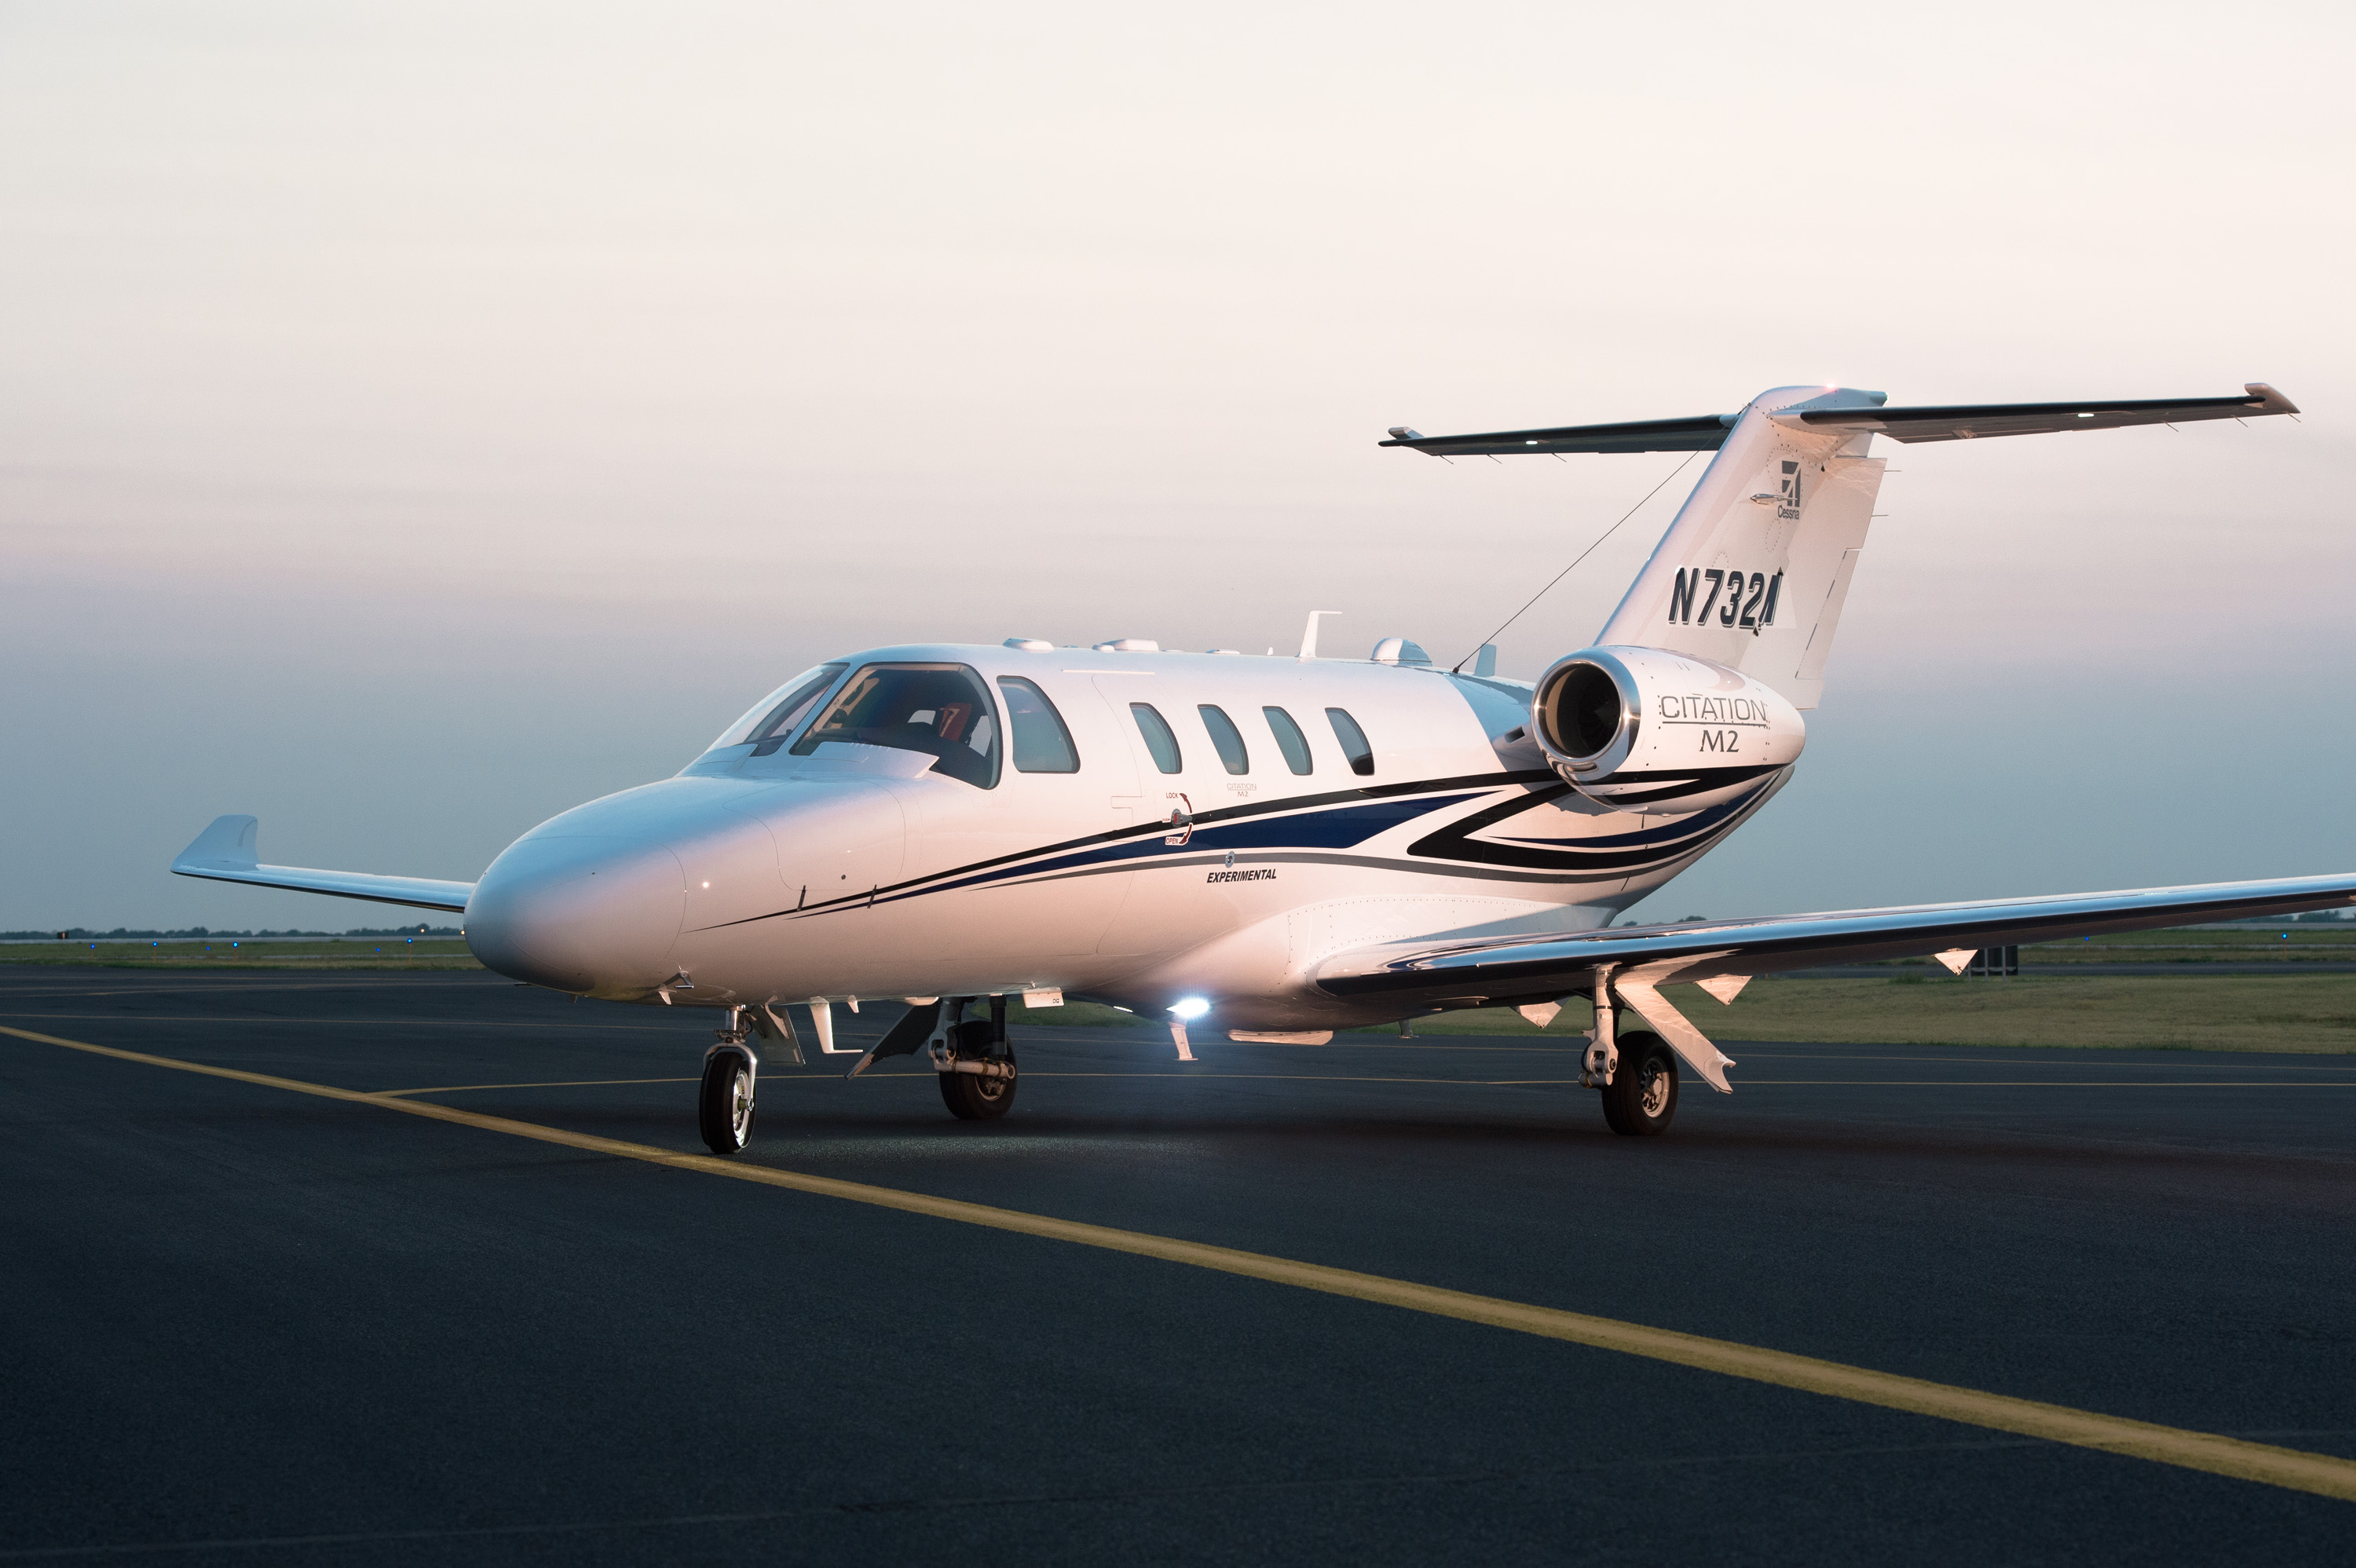 http://txtav.com/~/media/textron-aviation/images/news-events/media-gallery/jets/citation-m2/17-0036_hires.ashx